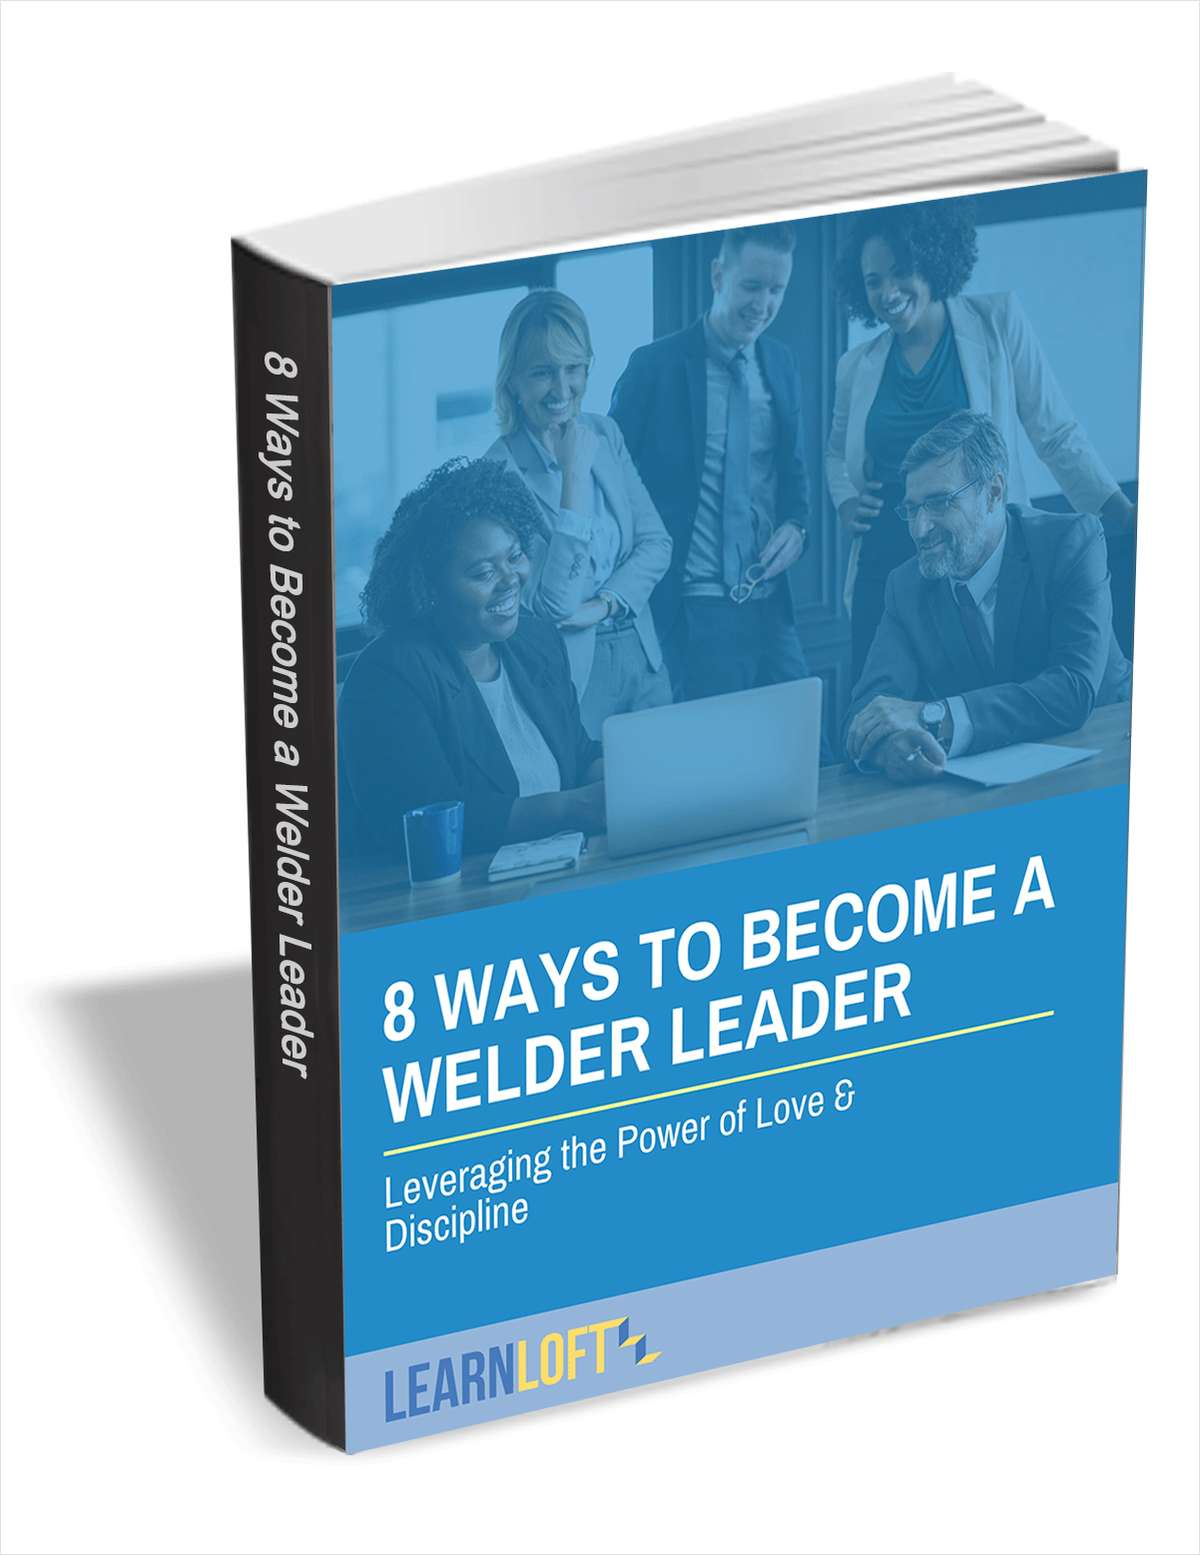 8 Ways to Become a Welder Leader - Leveraging the Power of Love & Discipline